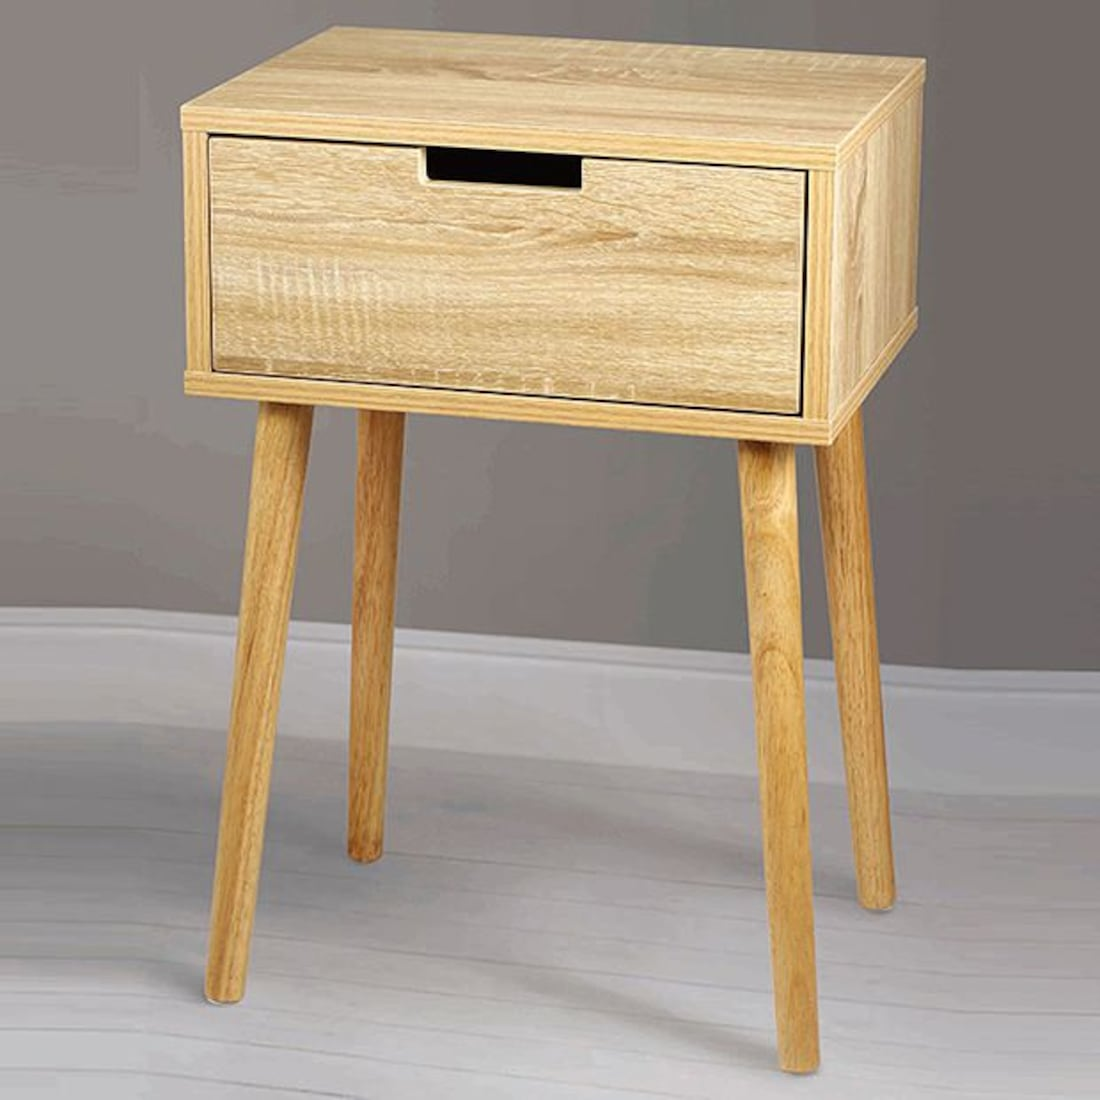 side table with drawer wood look target furniture end tables black and metal coffee high painted stone ikea hanging nightstand entry sofa inch gloss lexington long cove bedroom